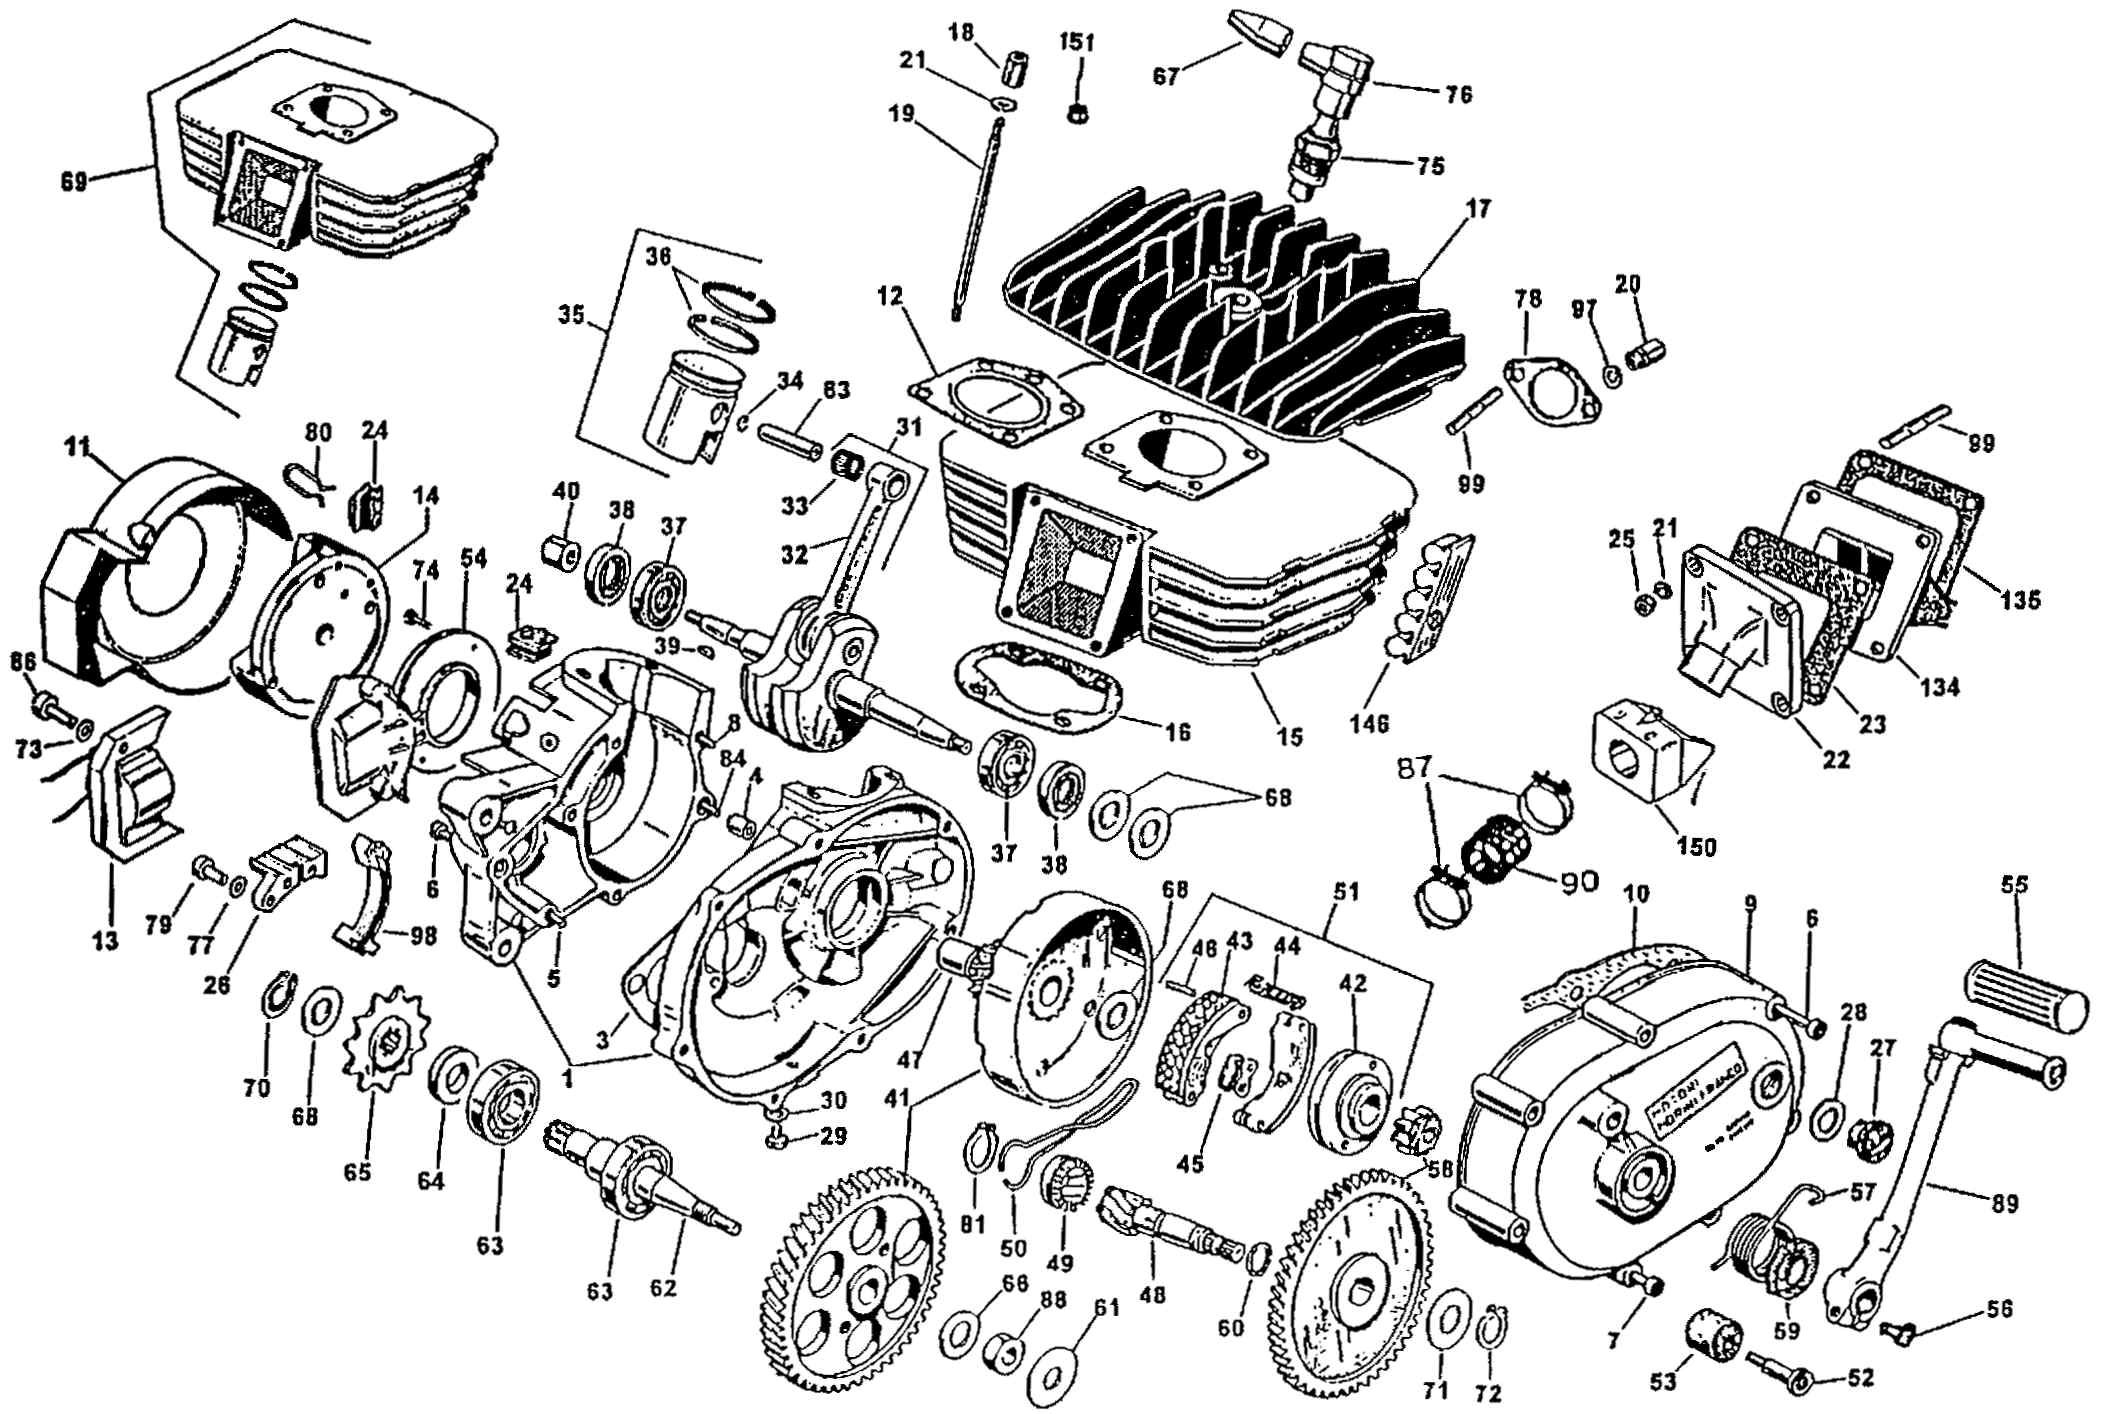 Subaru Repair Manual Instant Download besides Used John Deere Van Brunt Model B Grain Drill Factory Operators Manual Jd Om Mi 947 likewise Schematics h in addition 2000 5 4 Triton Engine Diagram also Ez Go Golf Cart Parts Diagram. on ford manual transmission parts diagrams